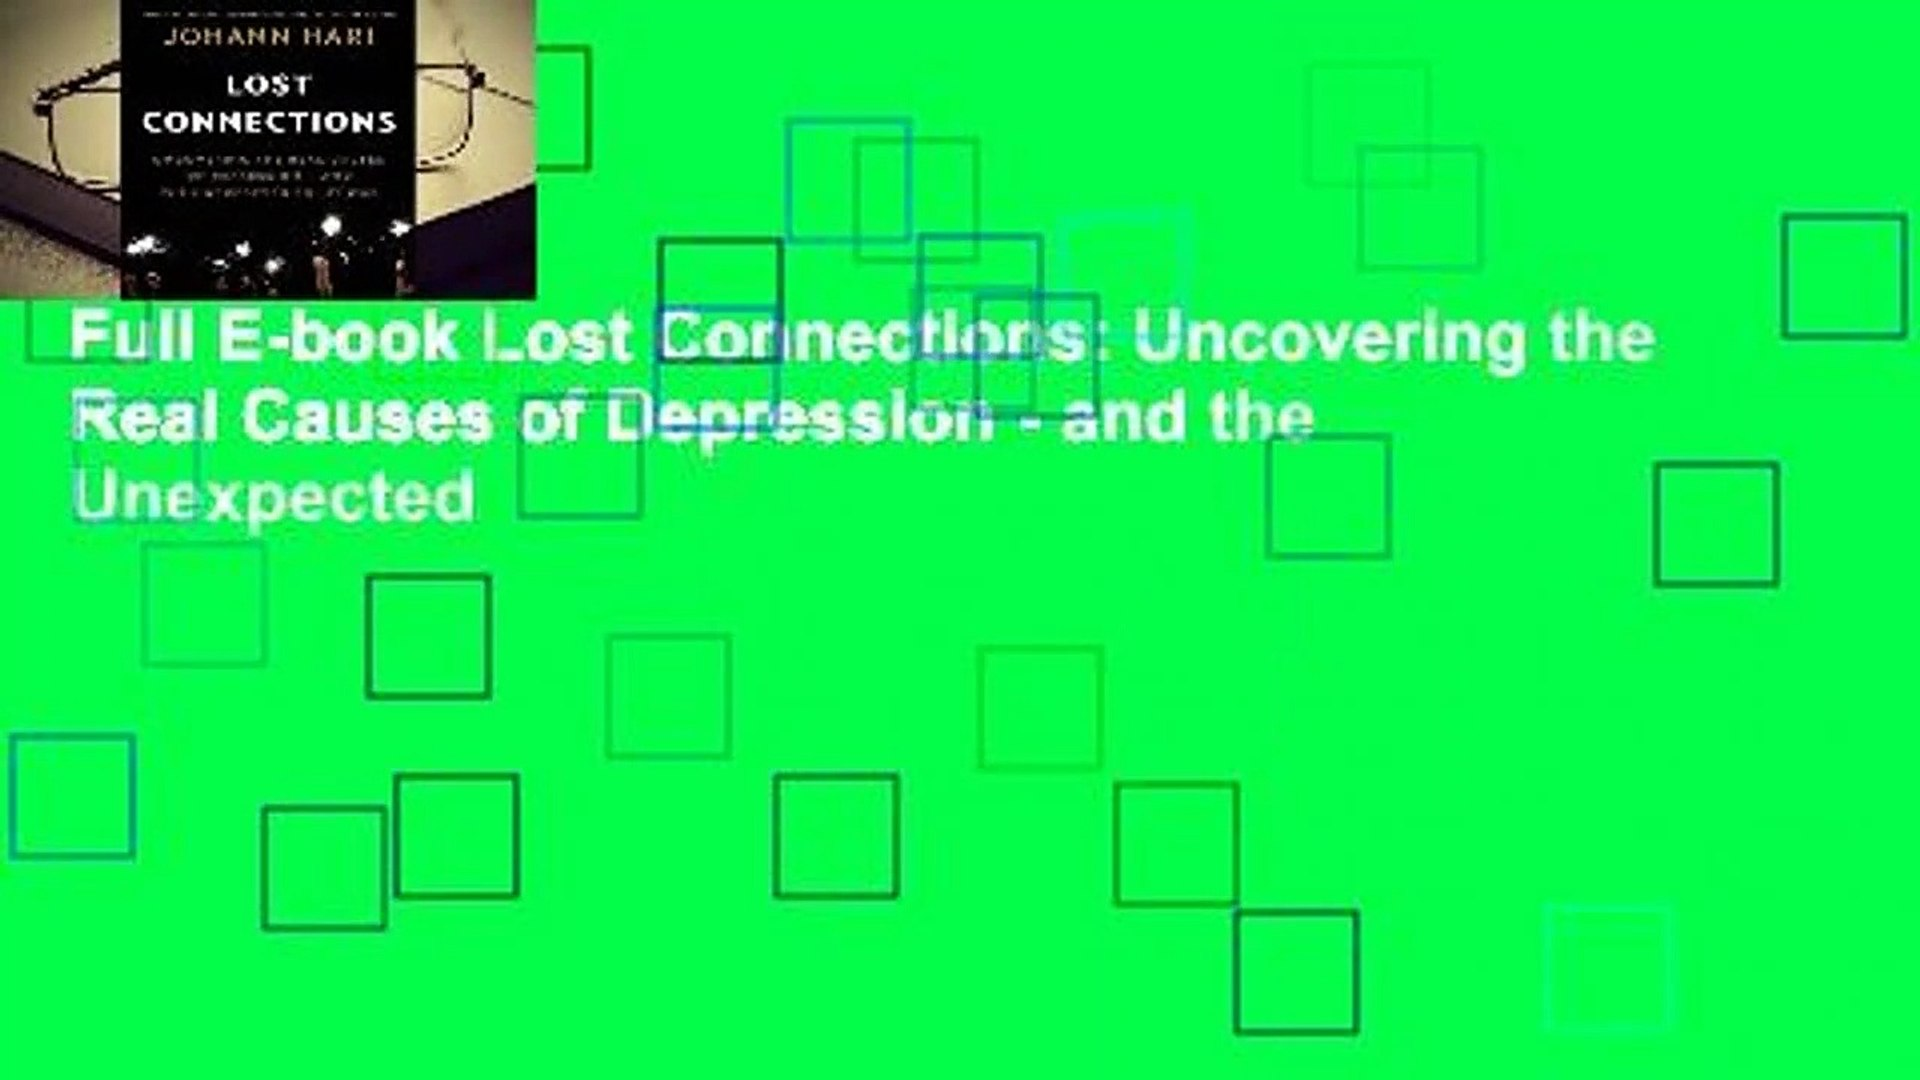 Full E-book Lost Connections: Uncovering the Real Causes of Depression -  and the Unexpected